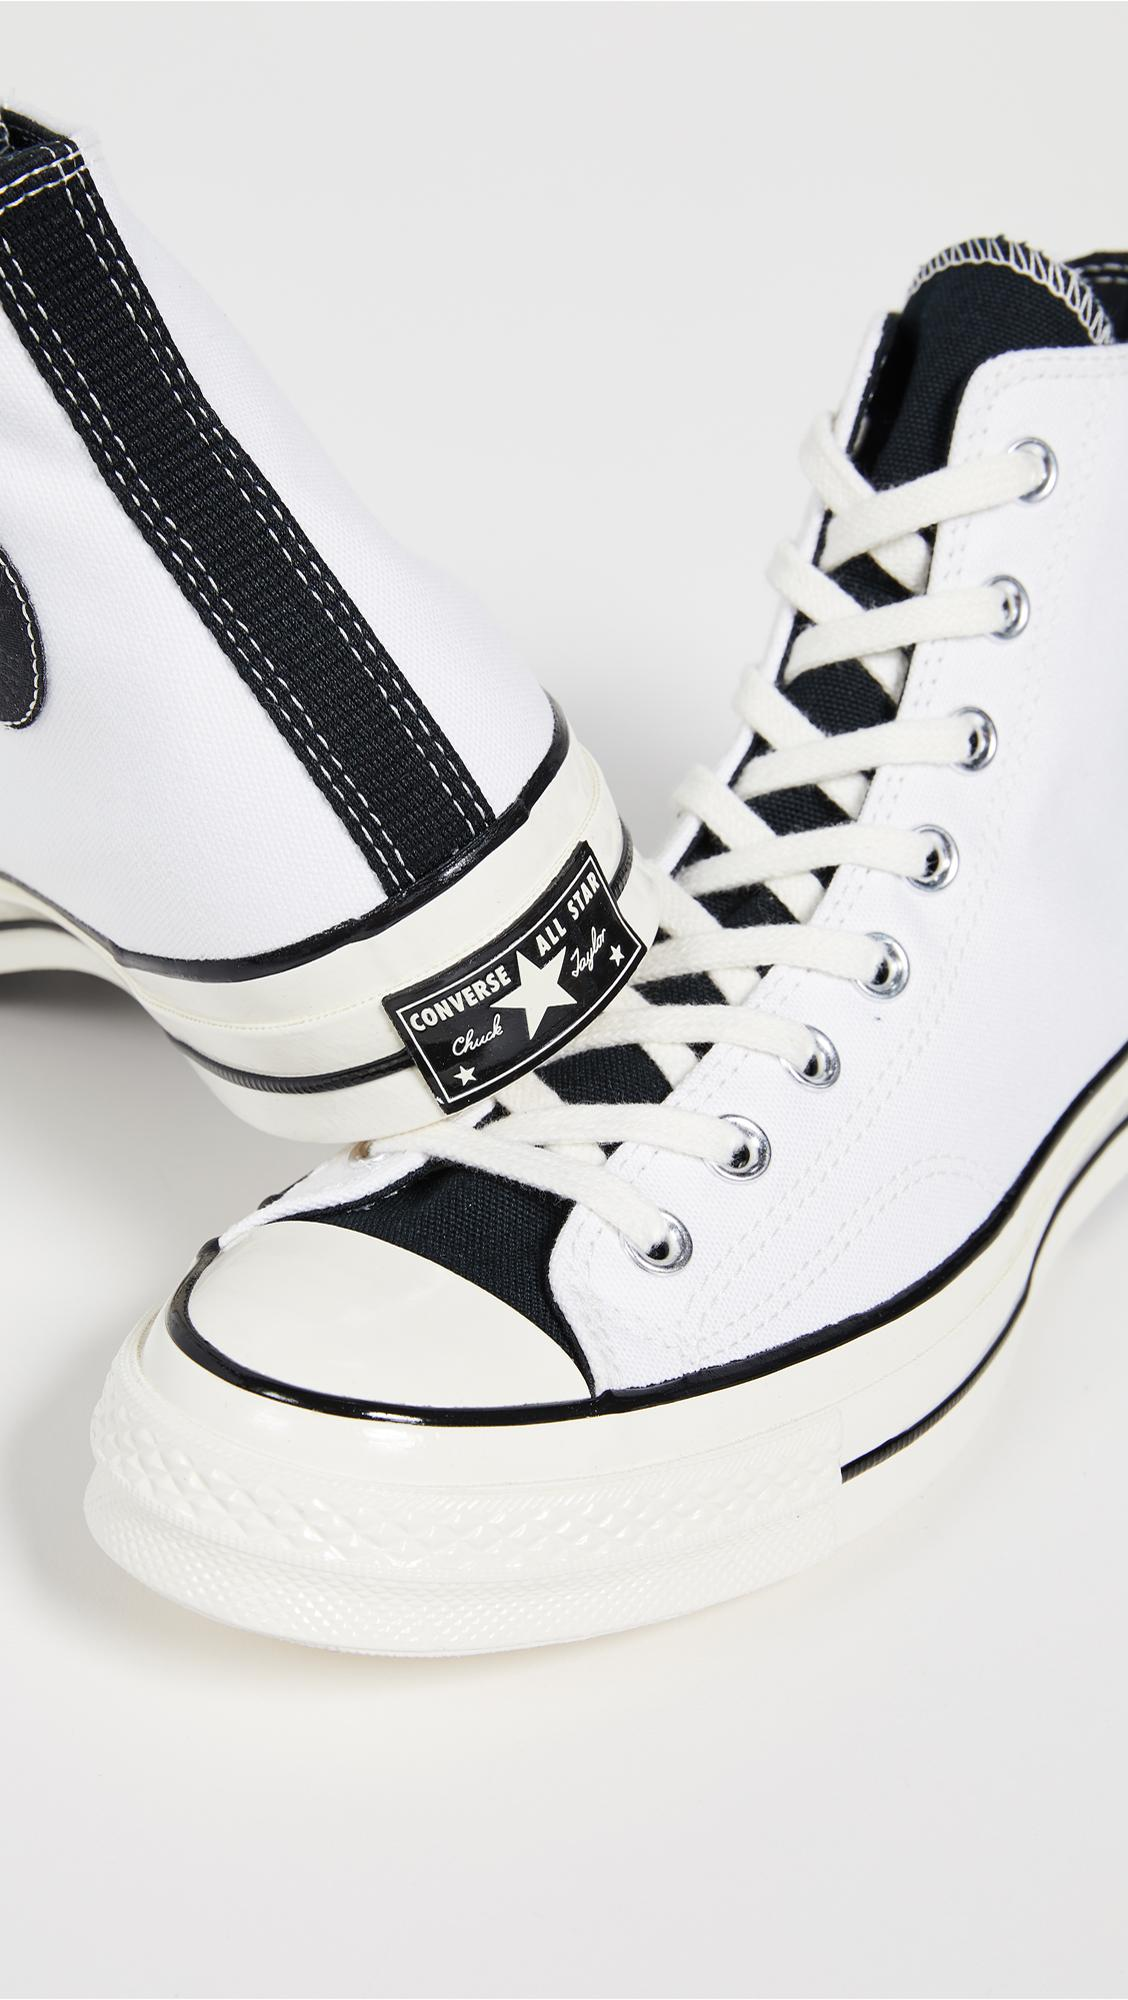 converse psykick white off 63% - www